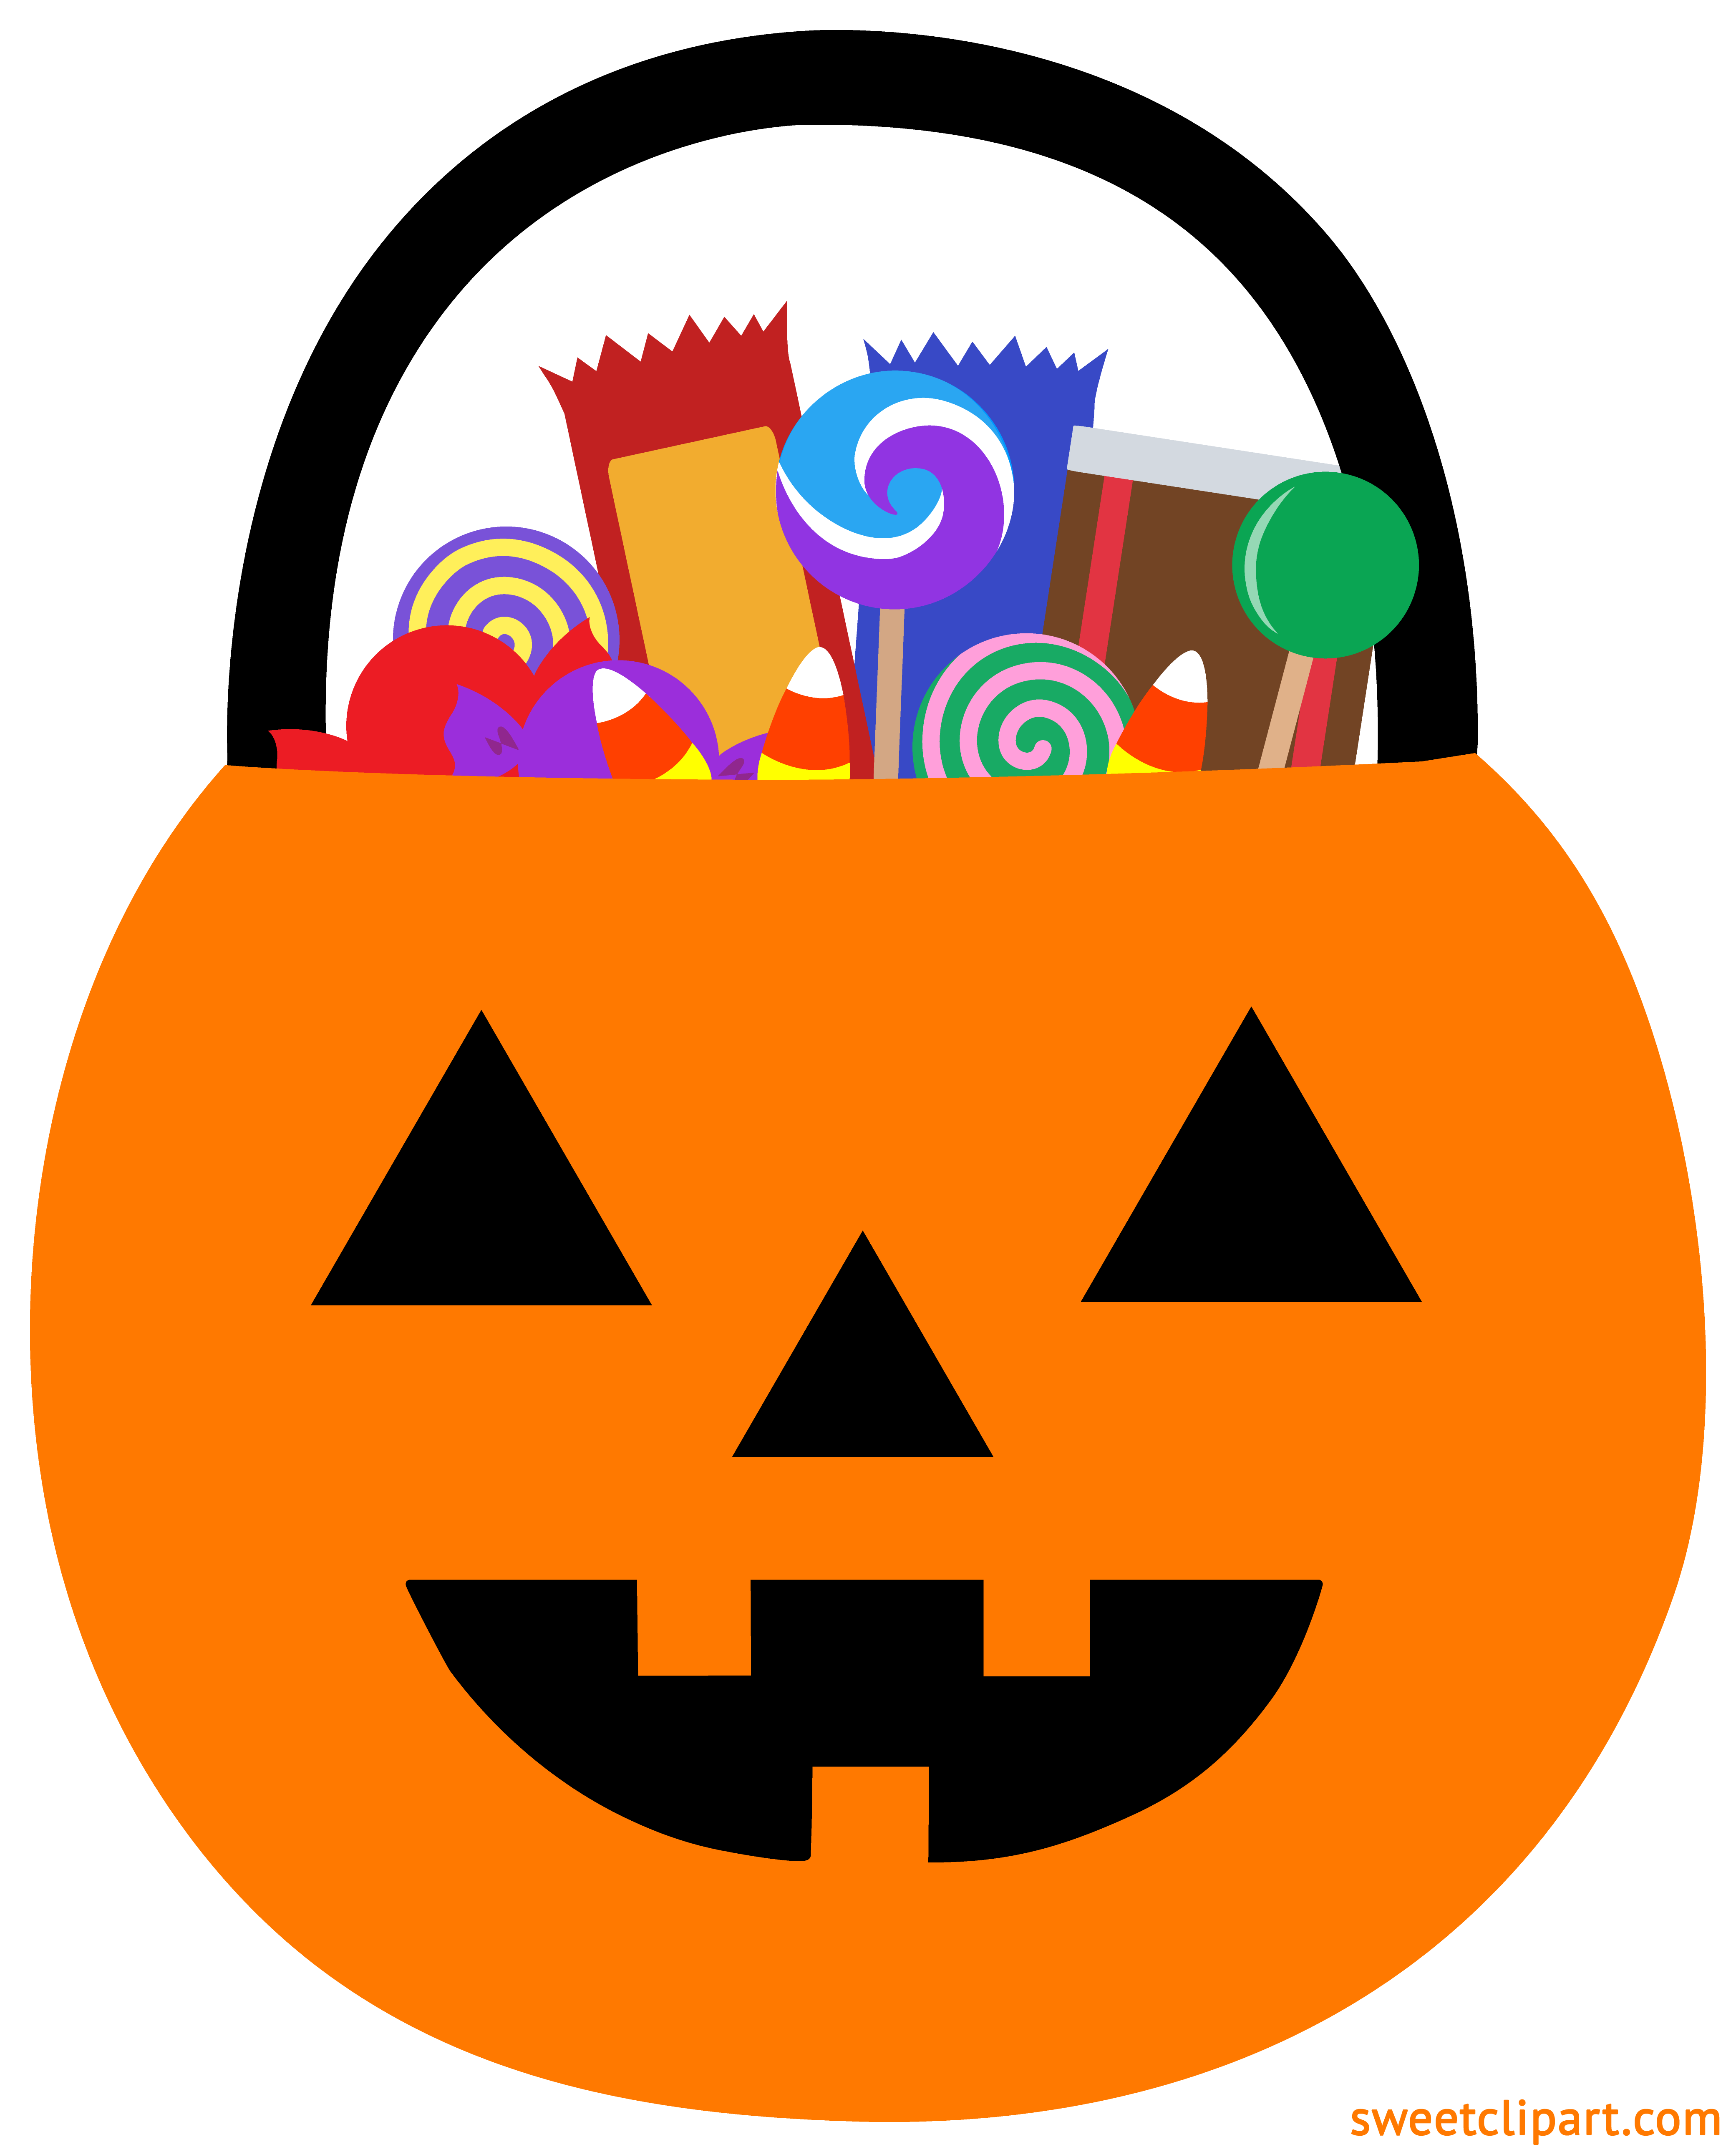 Clipart circle candy. Halloween pumpkin pail with